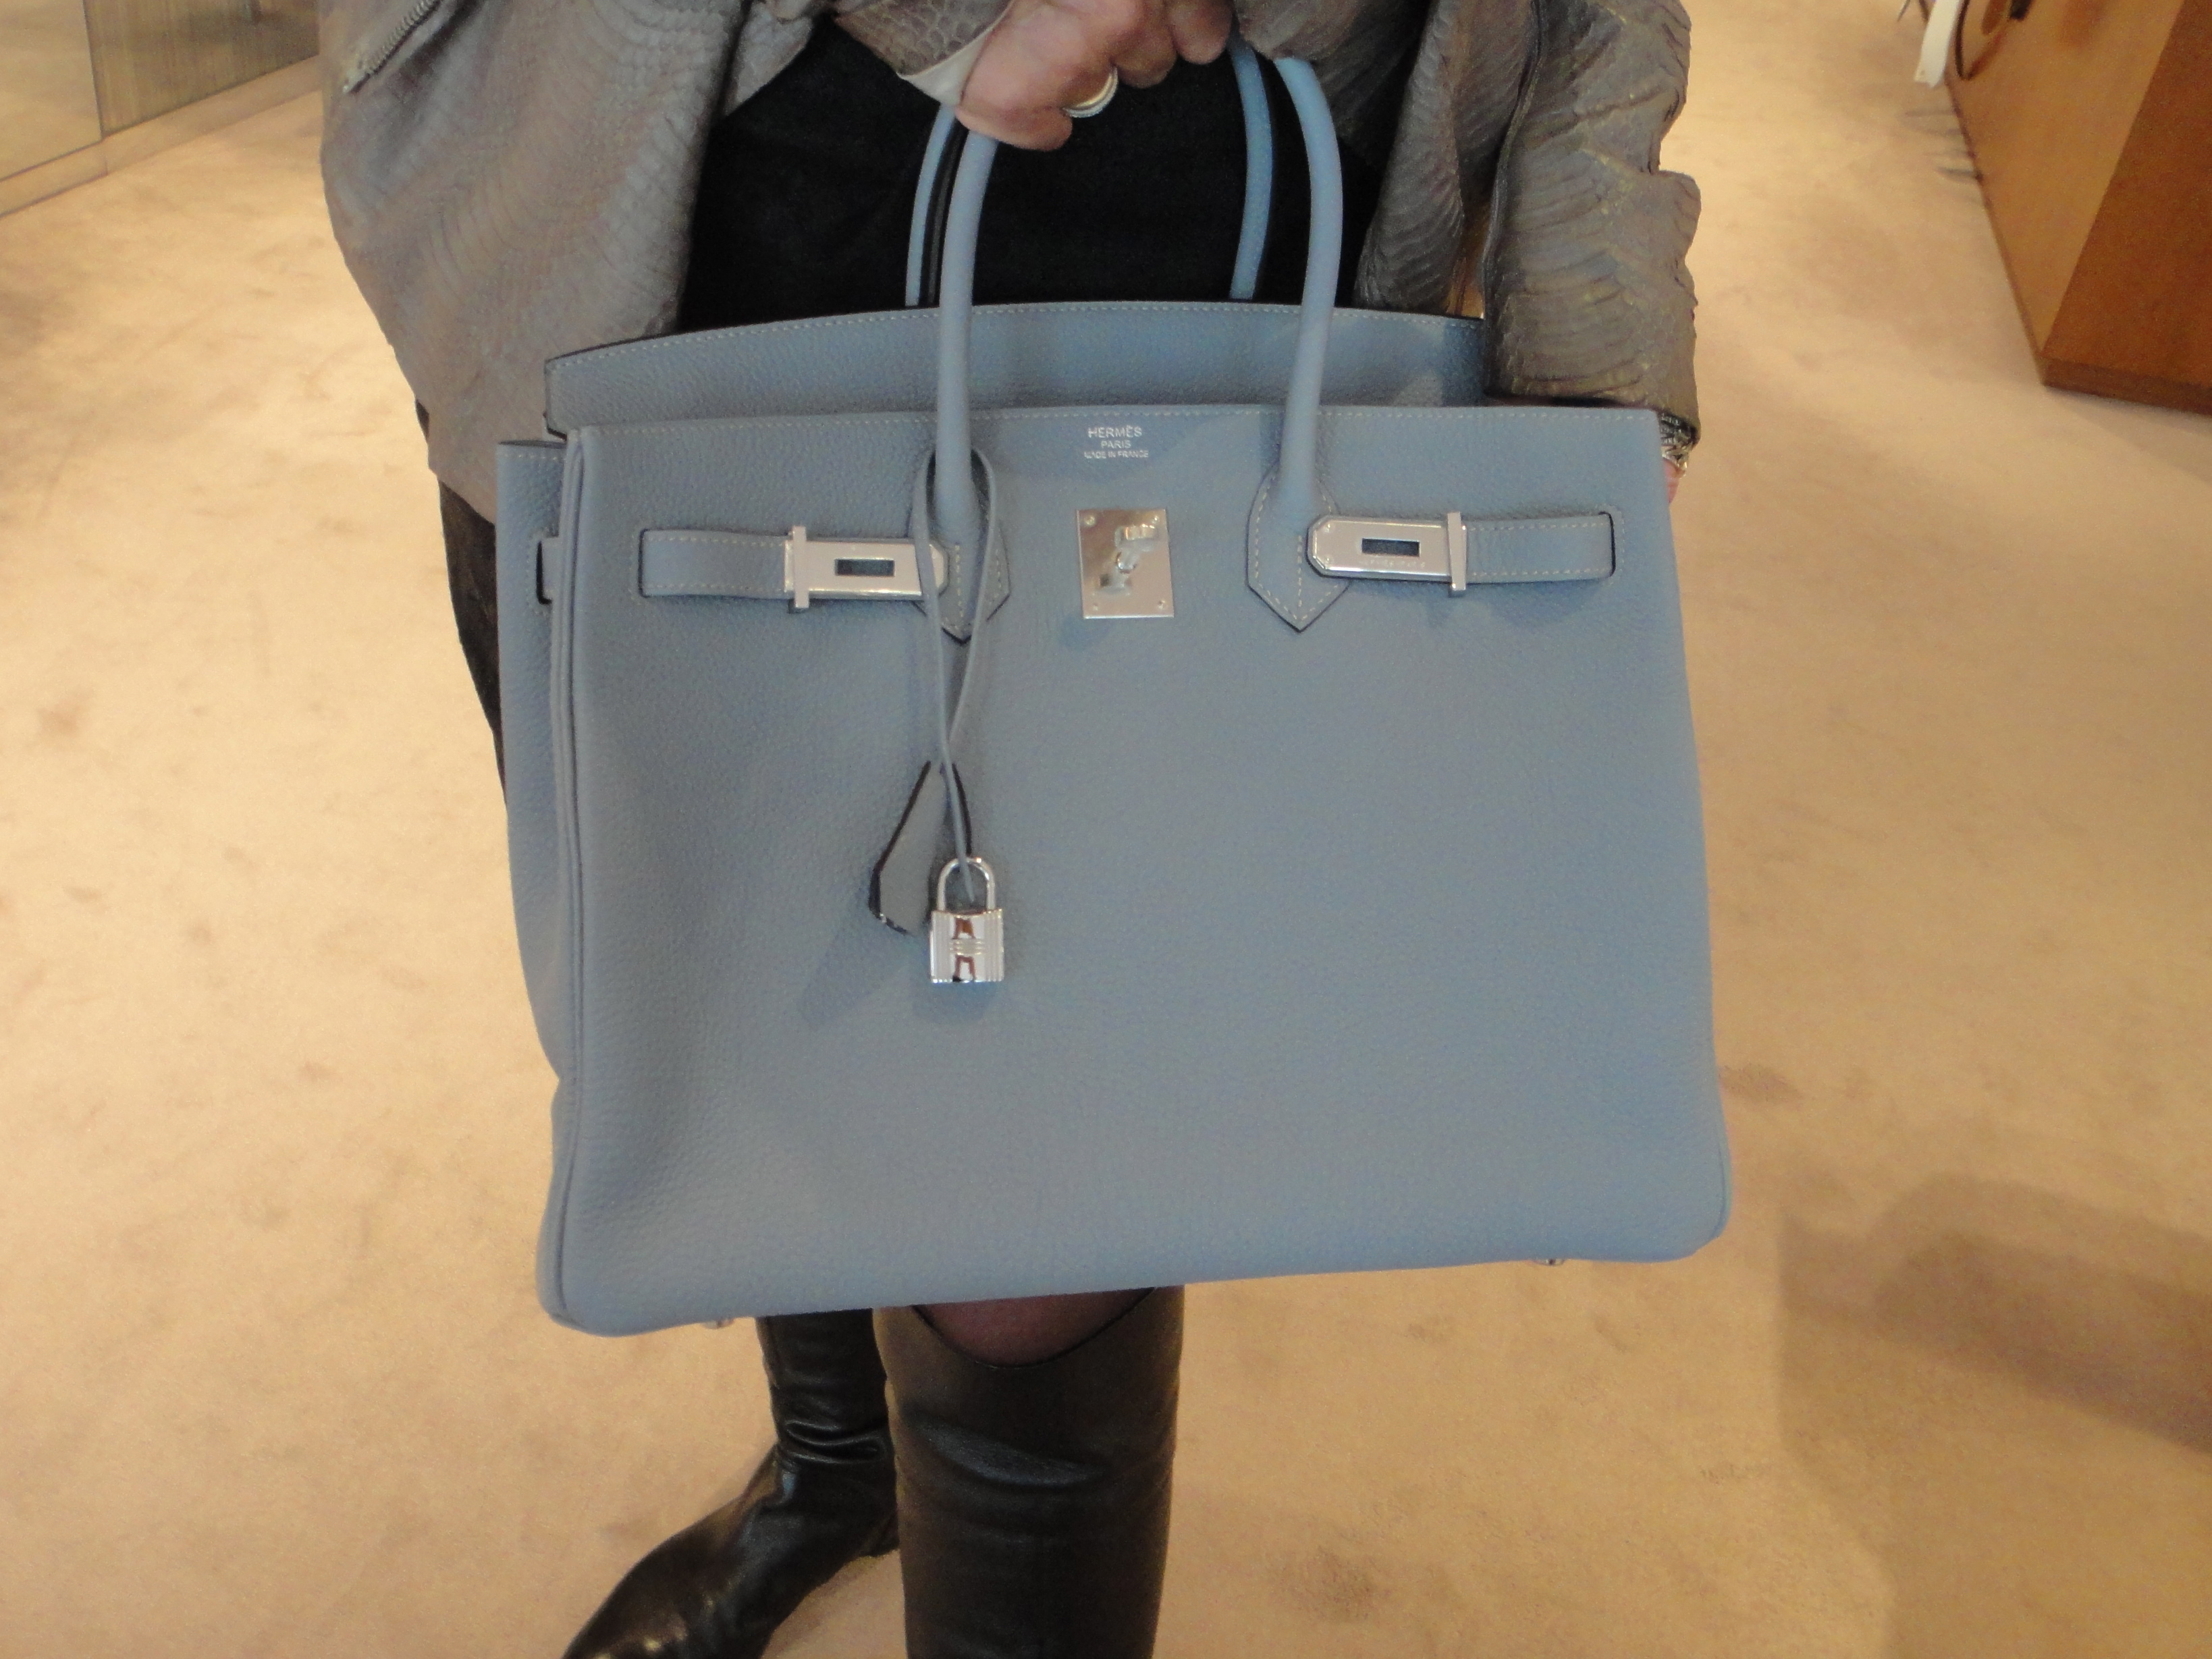 affordable bag - My friend's new Herm��s bag 2 / Die neue Herm��s Tasche meiner ...